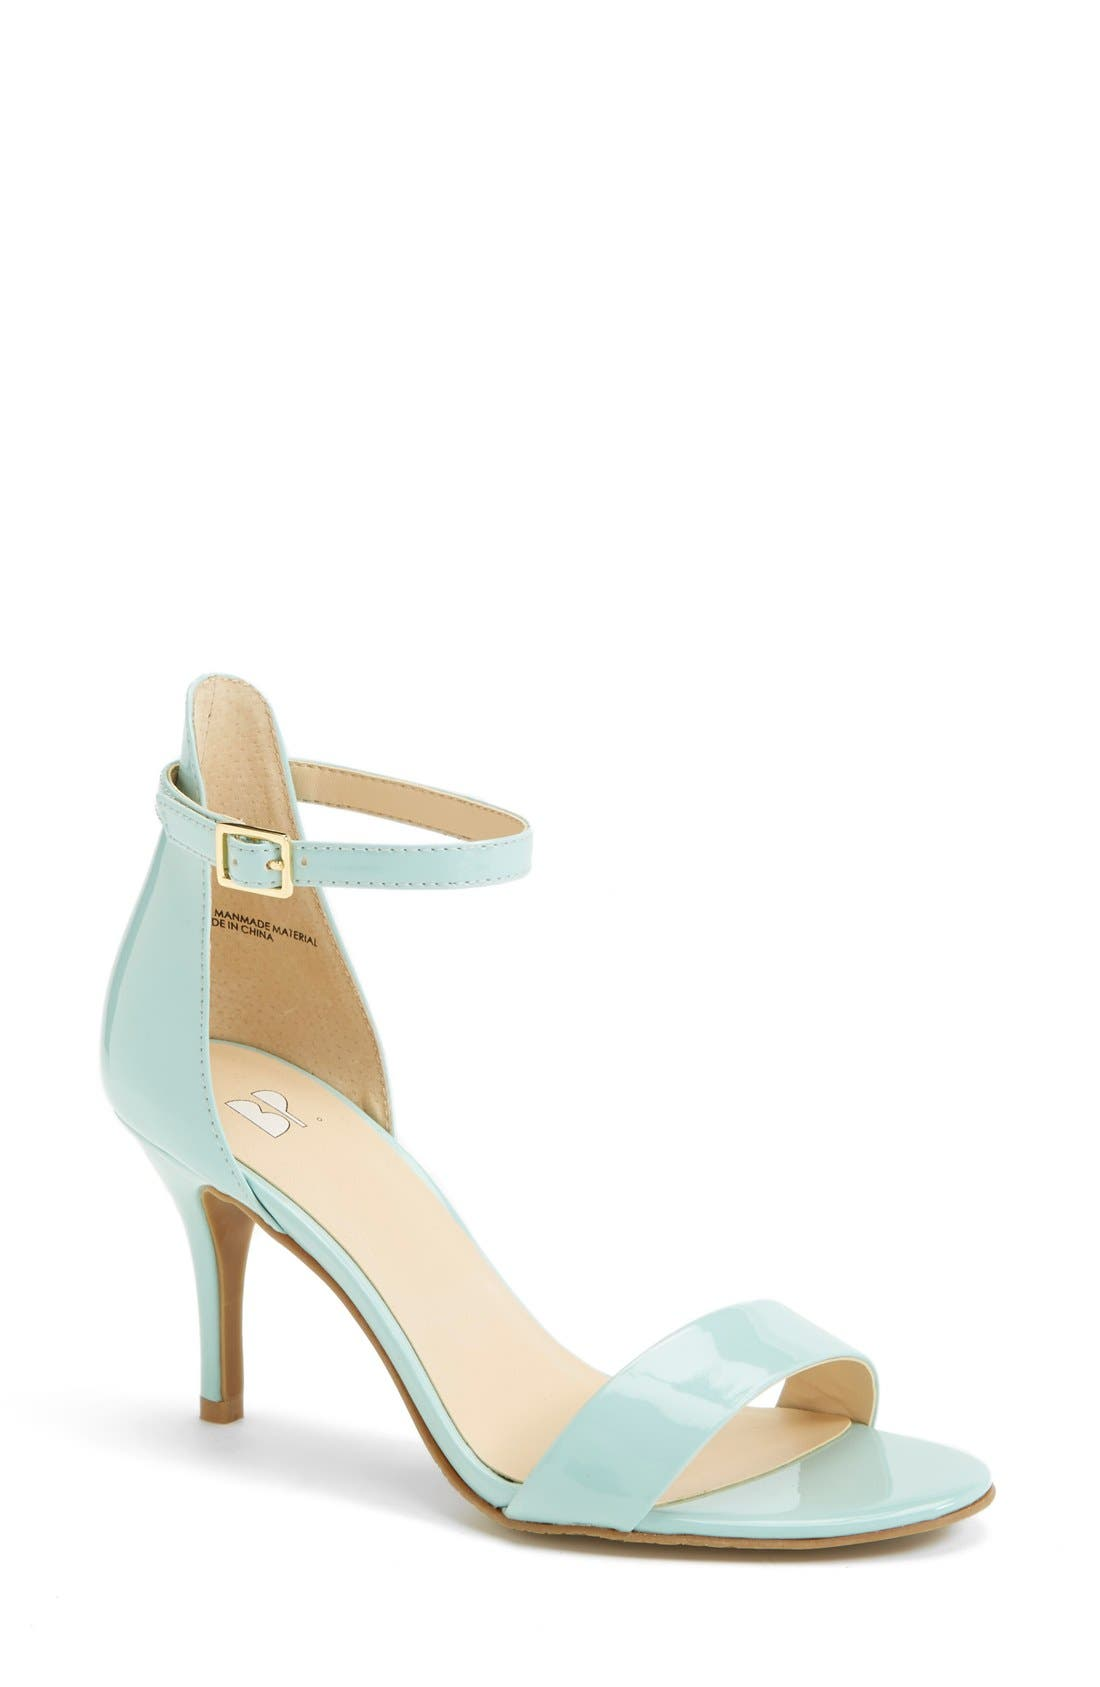 'Luminate' Open Toe Dress Sandal,                             Main thumbnail 31, color,